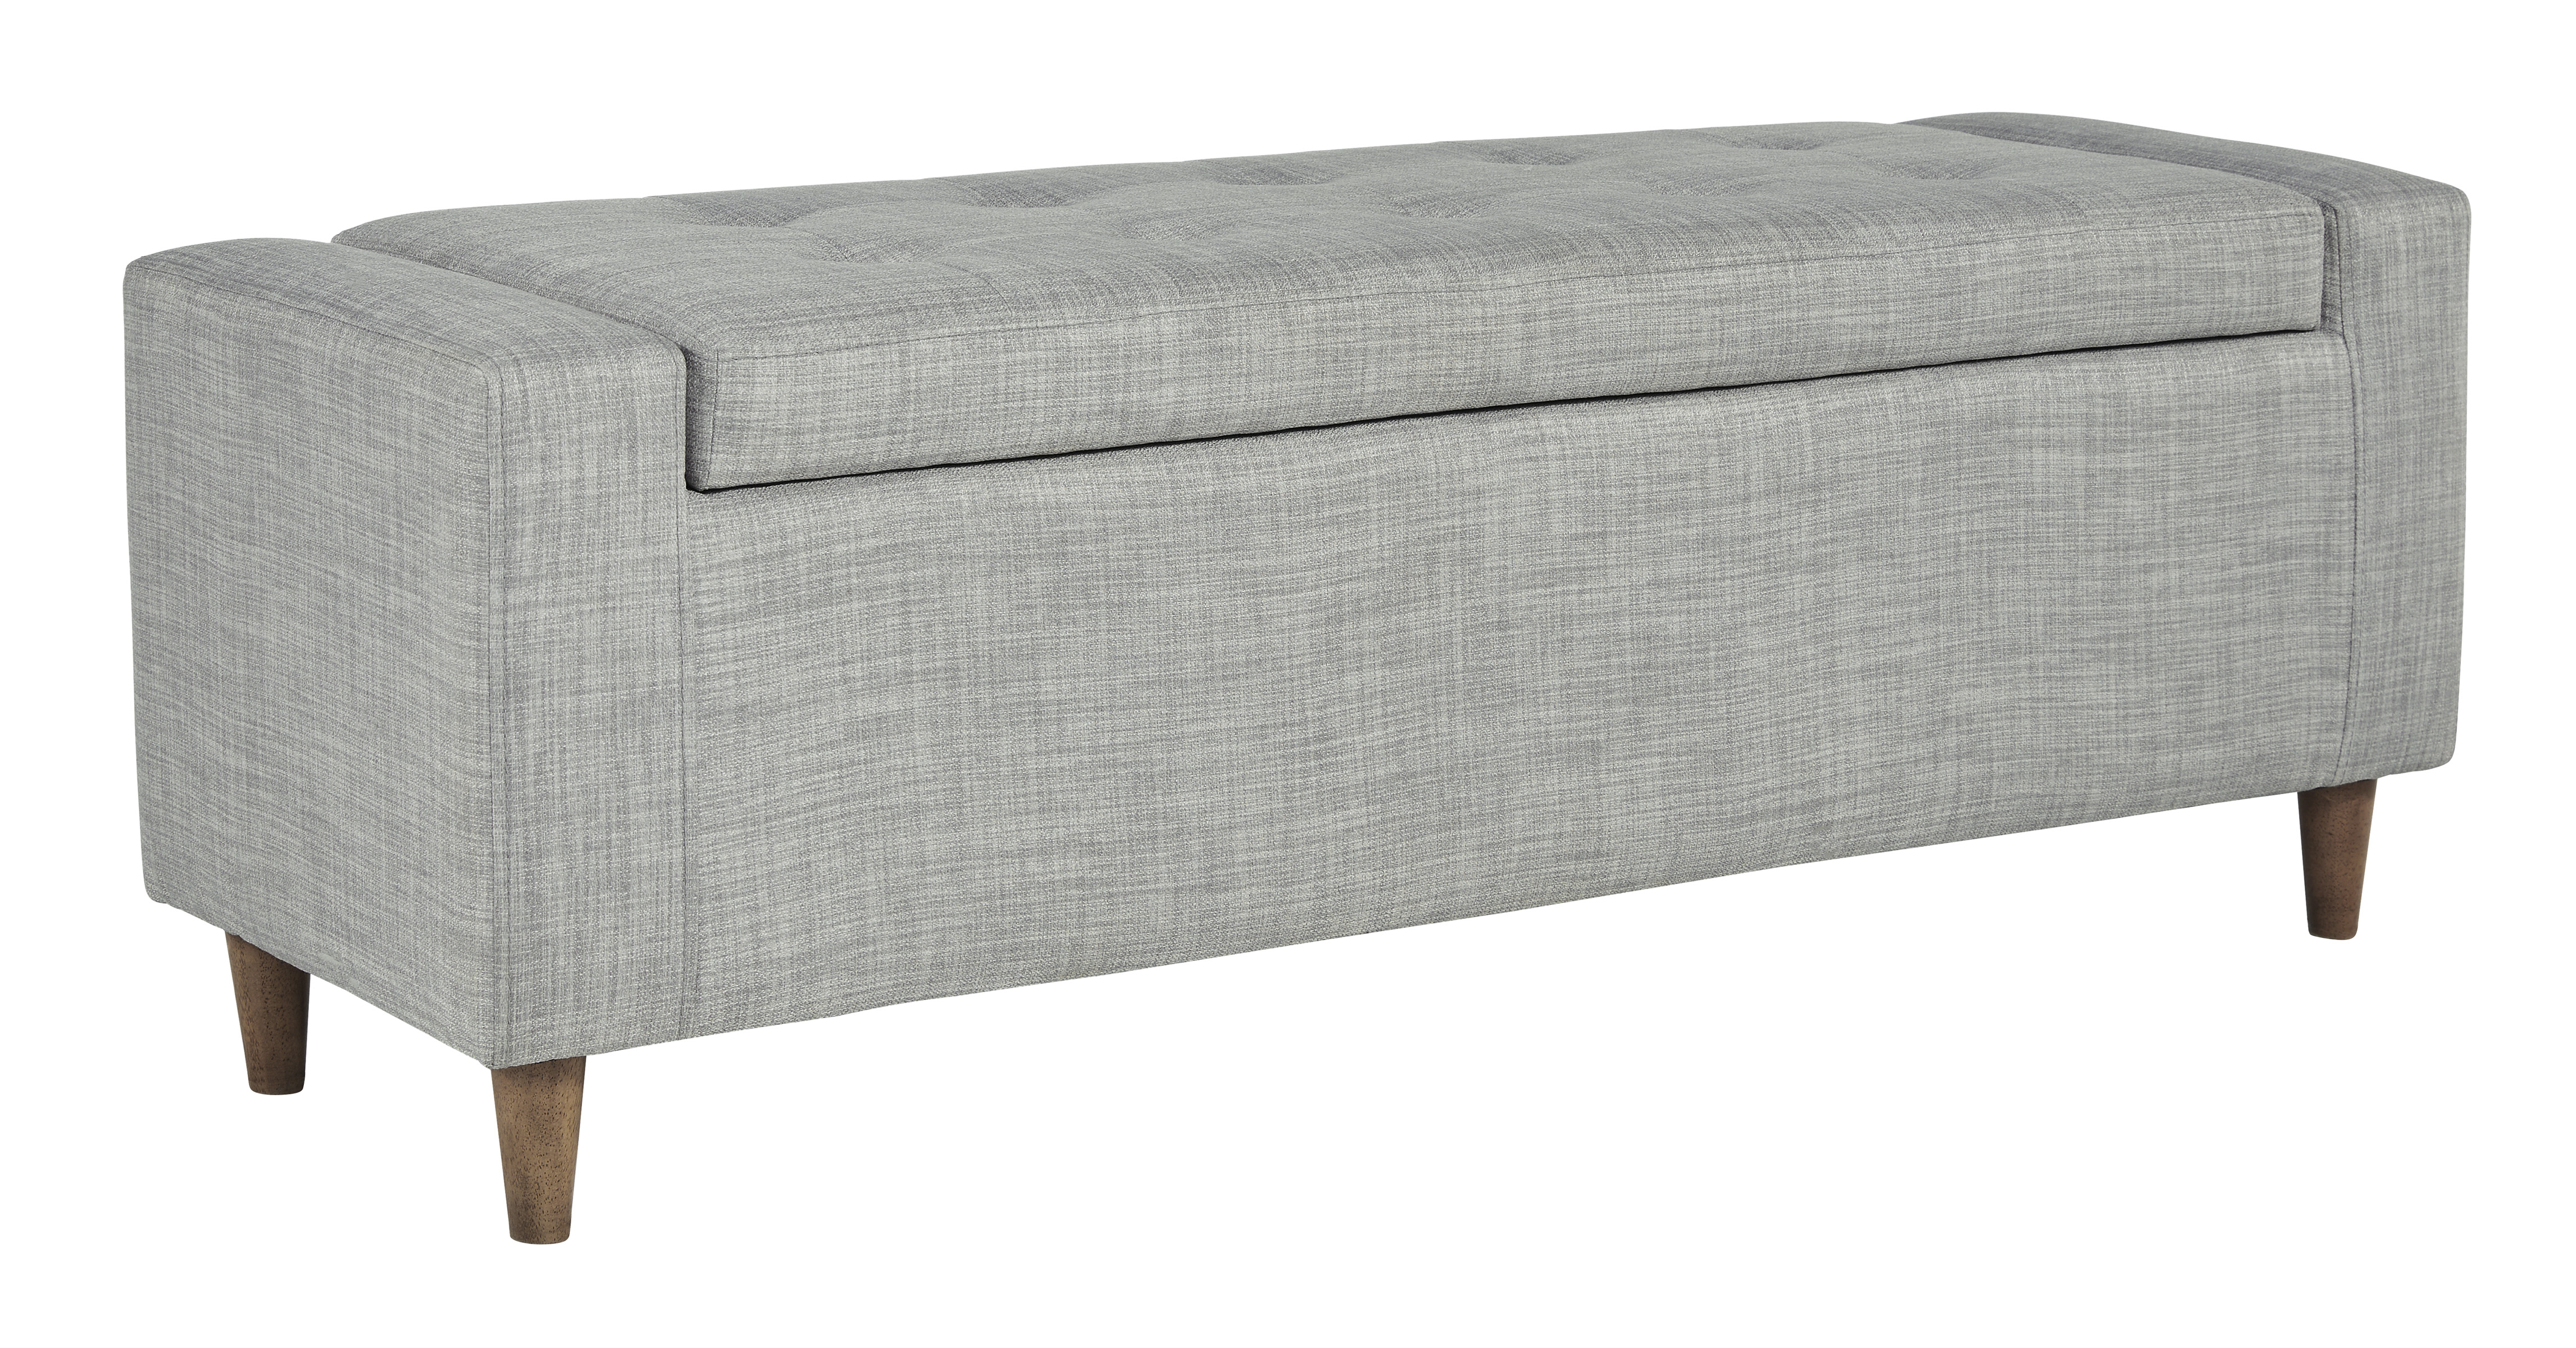 Winler Upholstered Accent Bench by Signature at Walker's Furniture